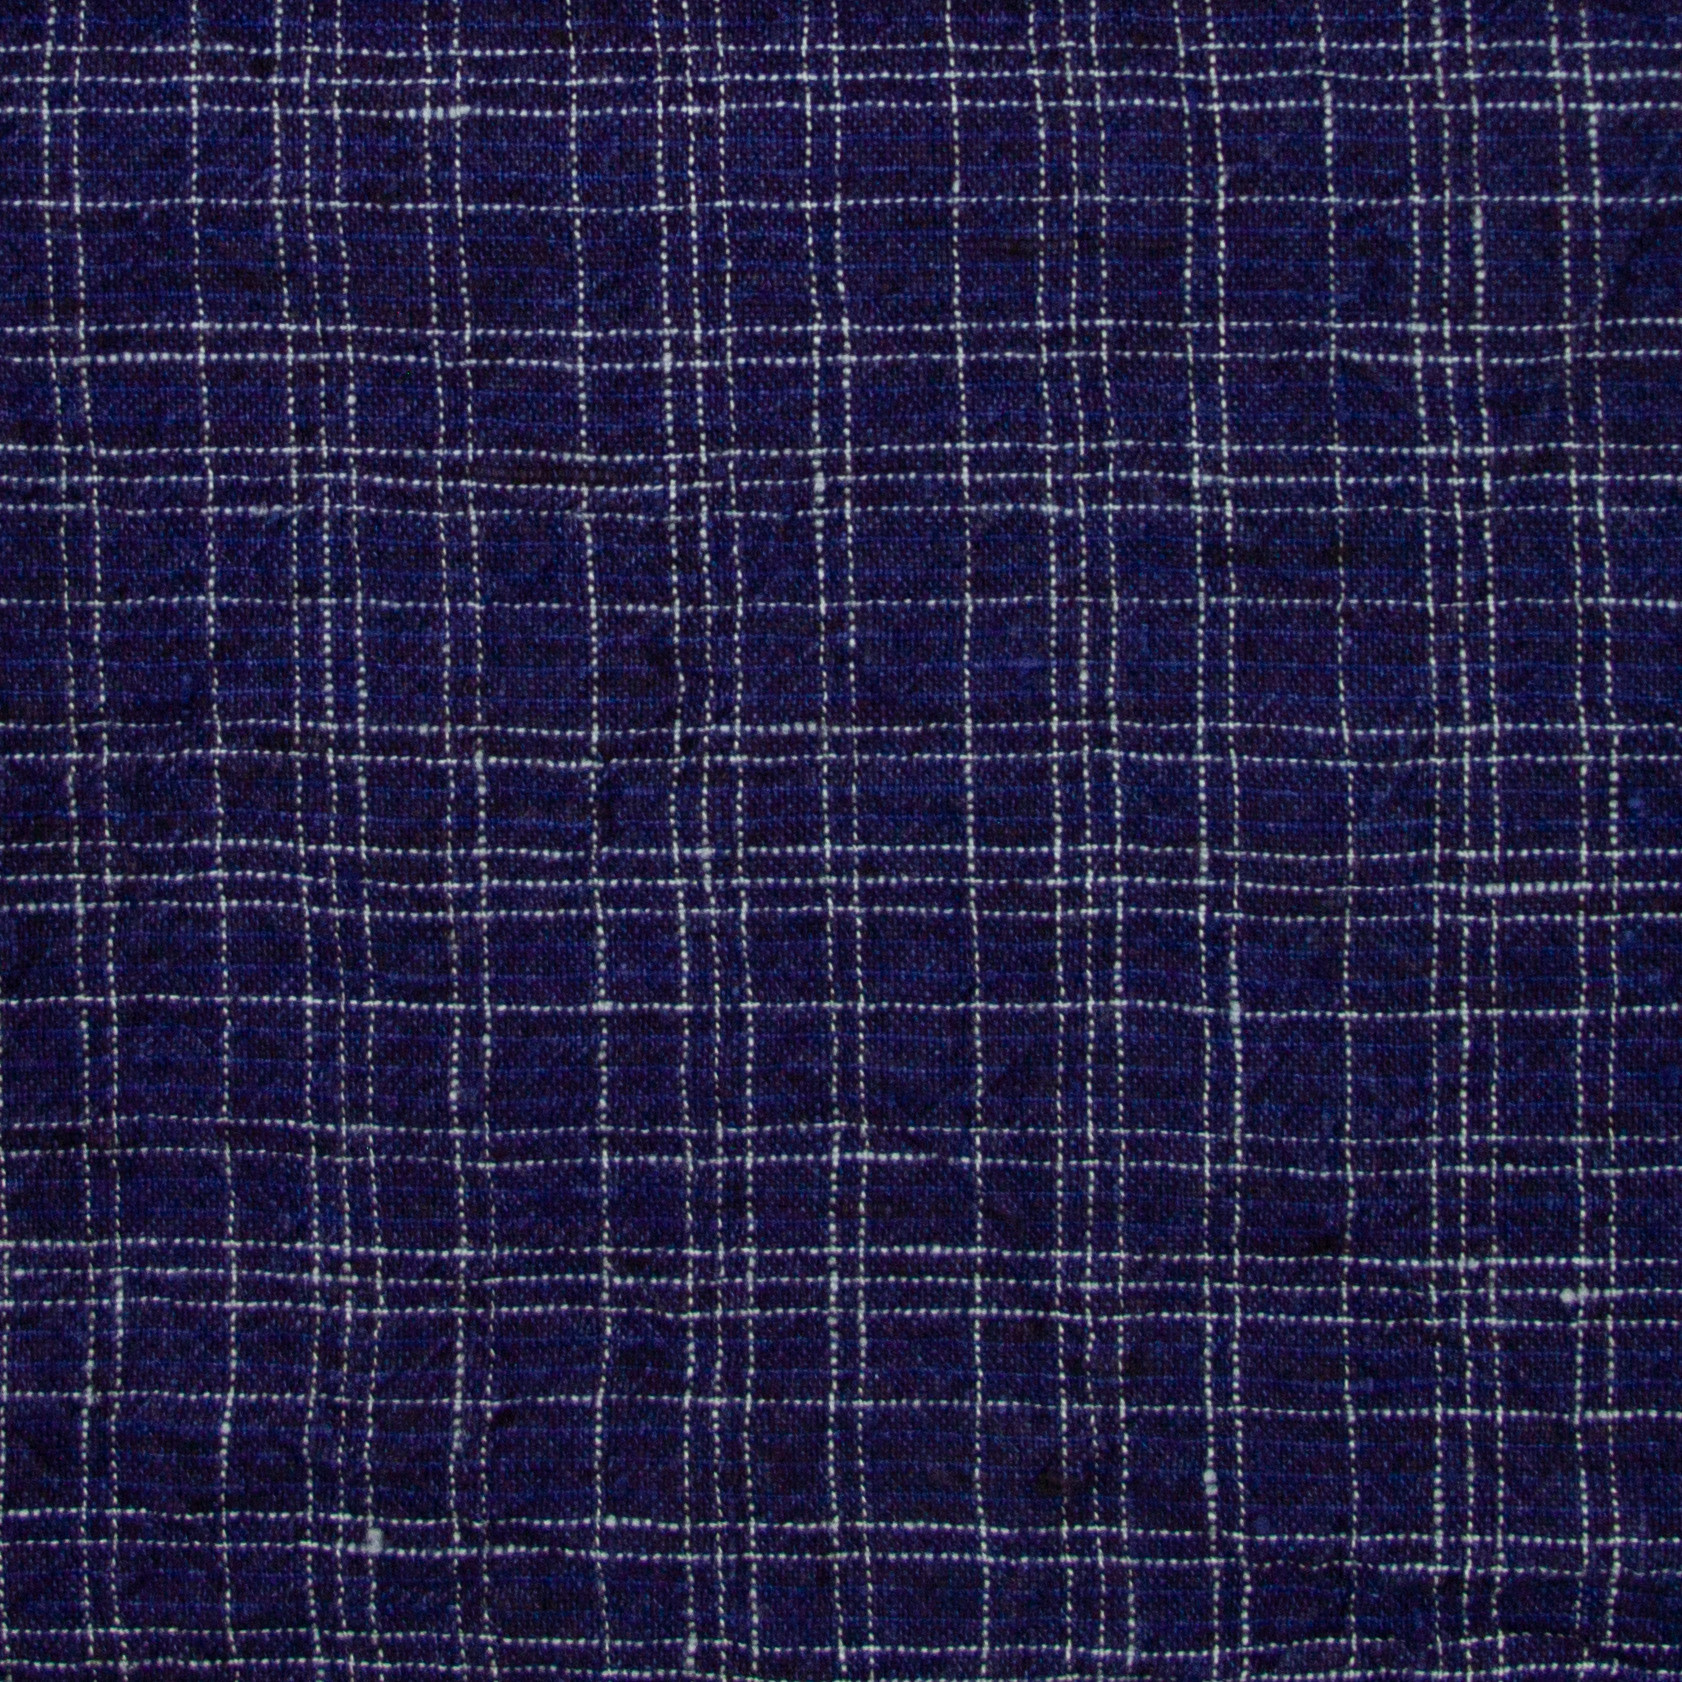 Washed French Linen Dish or Hand Towel with Hidden Apron Strings -Dark Blue Small Checks